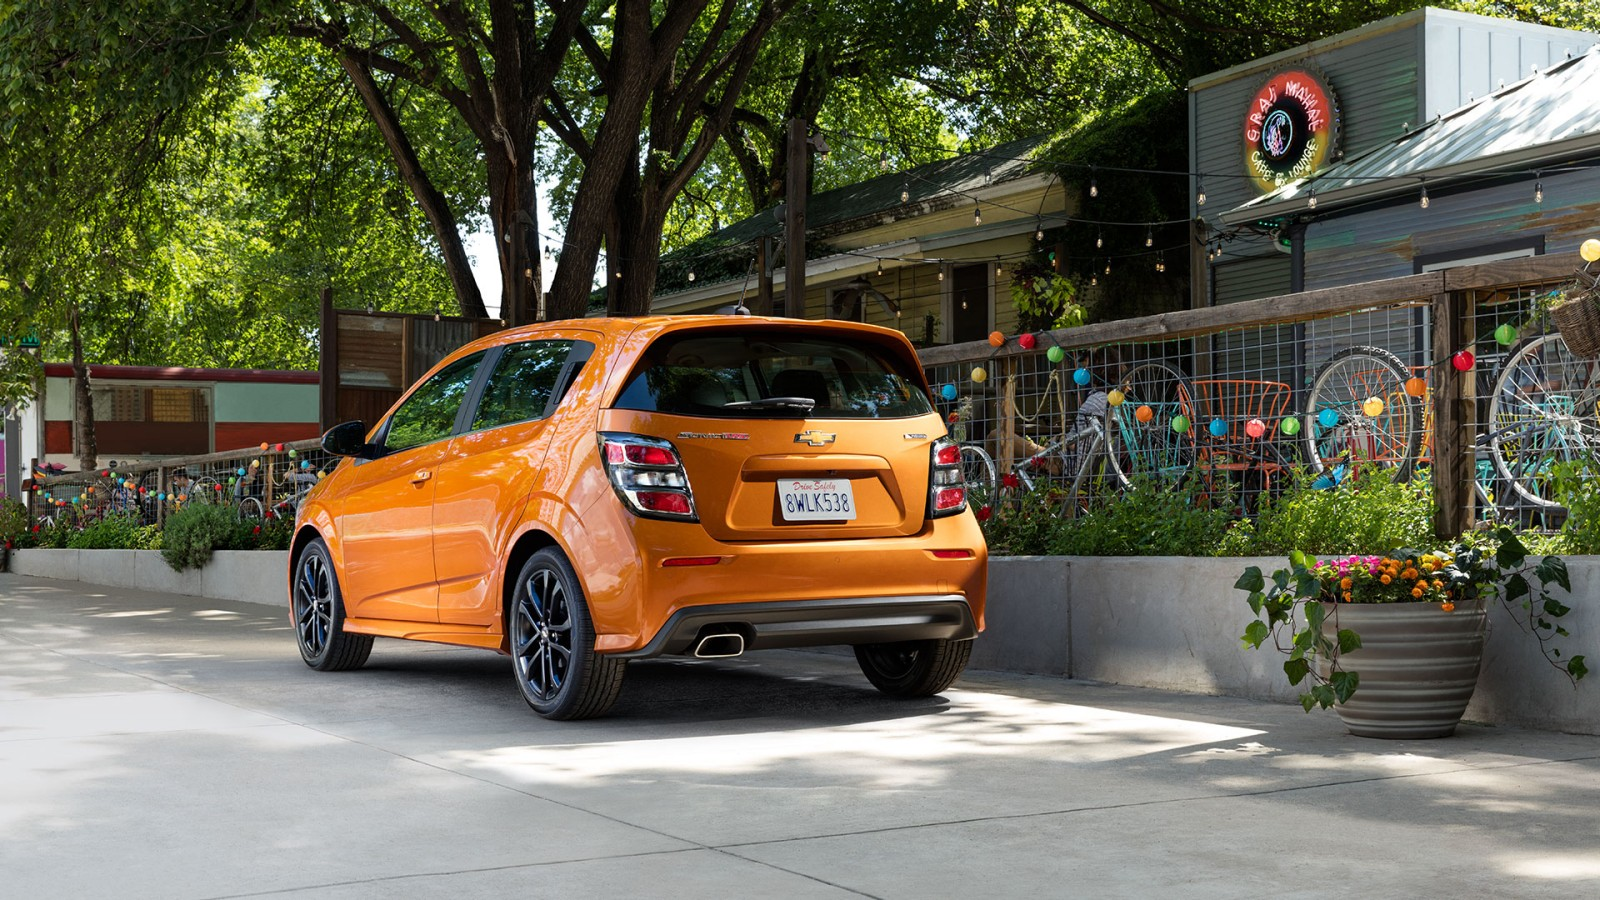 2017 Chevrolet Sonic Pricing